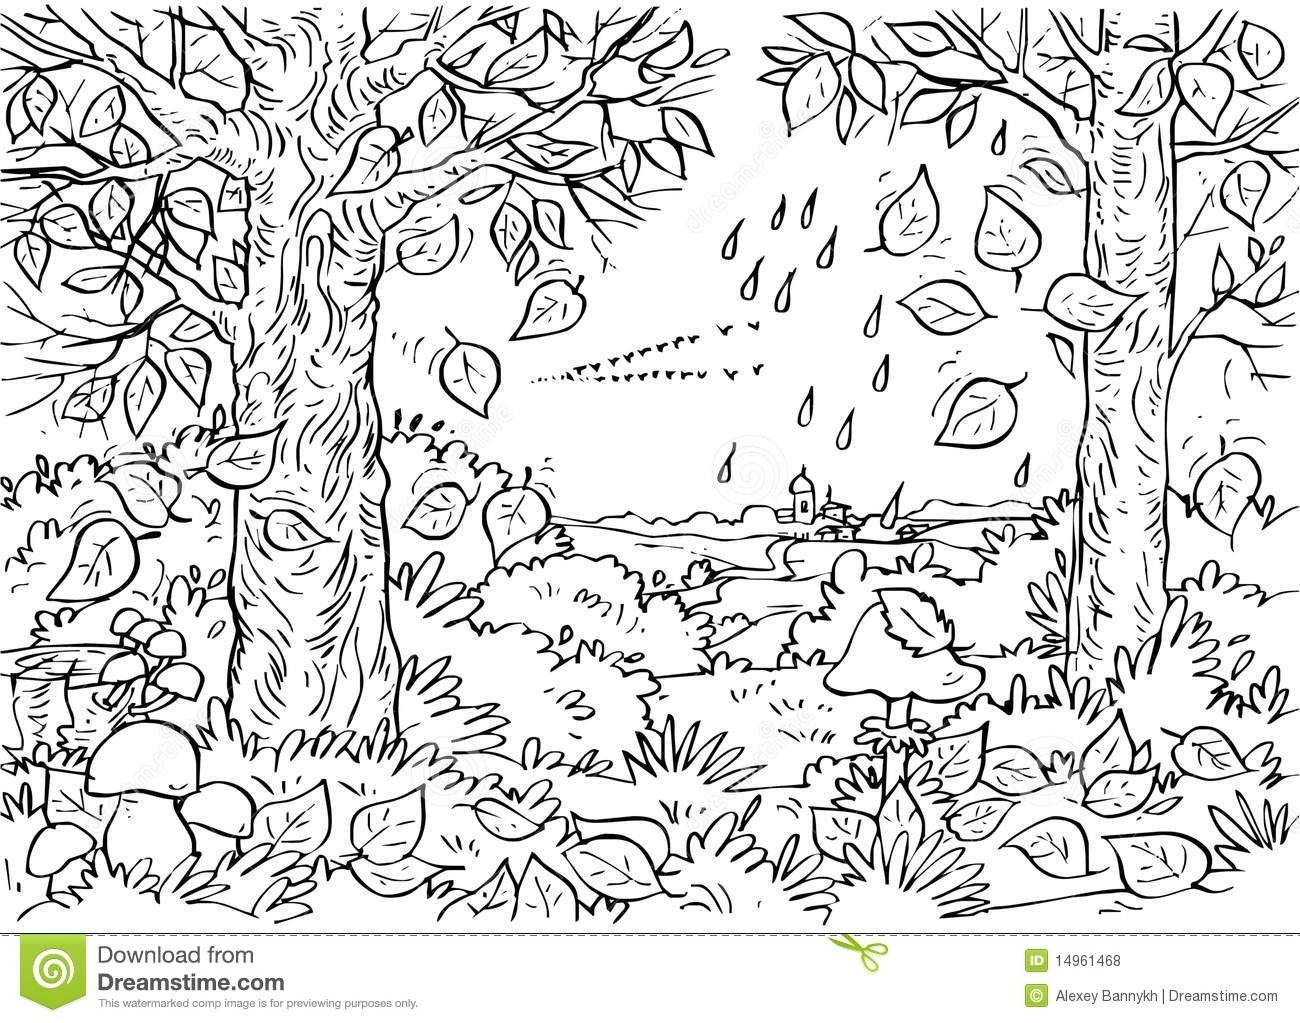 Forest black and white clipart clip art royalty free stock Forest Clipart Black And White (93+ images in Collection) Page 1 clip art royalty free stock